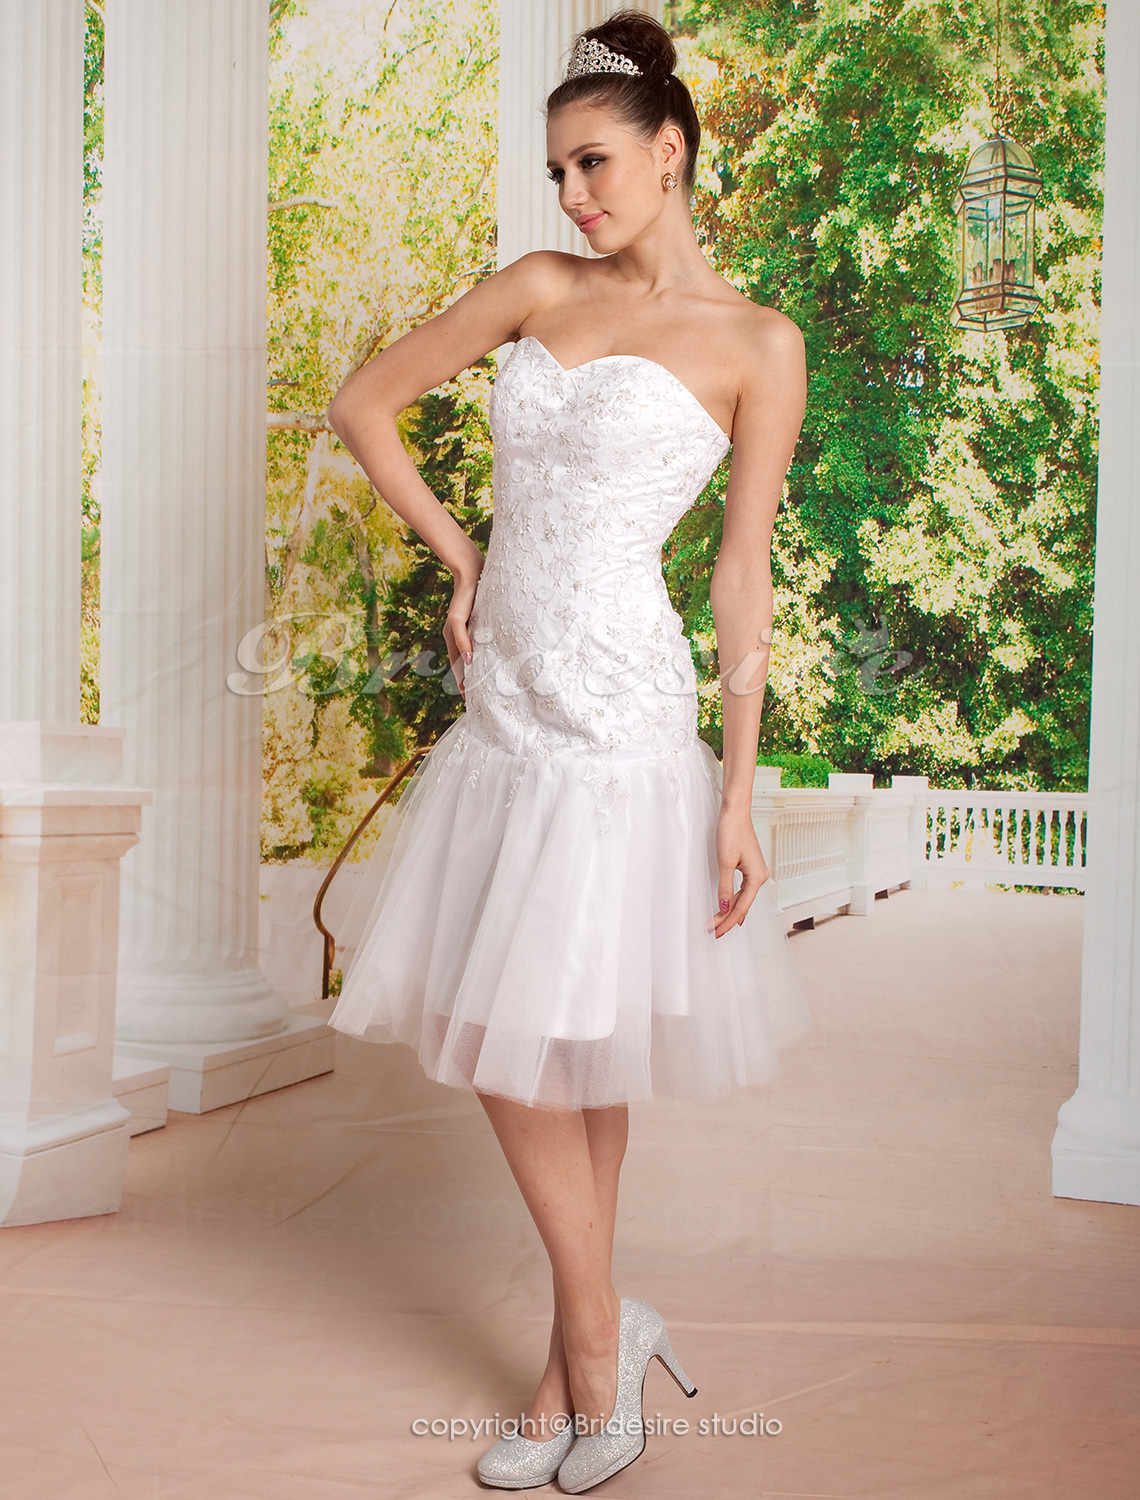 Sheath/ Column Tulle And Lace Knee-length Sweetheart Wedding Dress